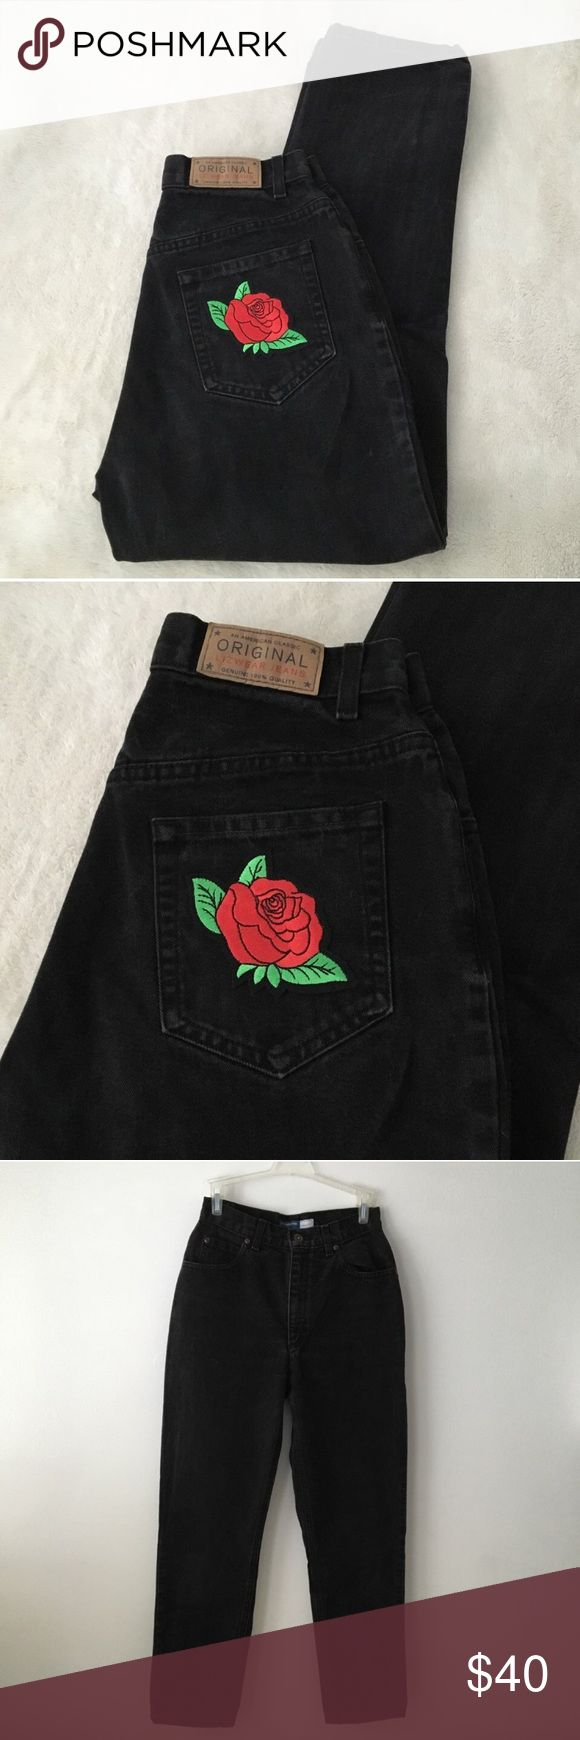 Red rose vintage mom jeans black sz 26 tumblr Red rose mom jeans ❤️ vintage Lizwear denim with a perfect high waist fit, tapered leg, with a rose patch on the back pocket. Excellent condition too. No try-on photos (doesn't fit me) but here are the measurements: Waist- 26 in., Hips- 37 in., Rise- 11 in. #red #rose #patch #mom #jeans #vintage Lizwear Jeans Ankle & Cropped